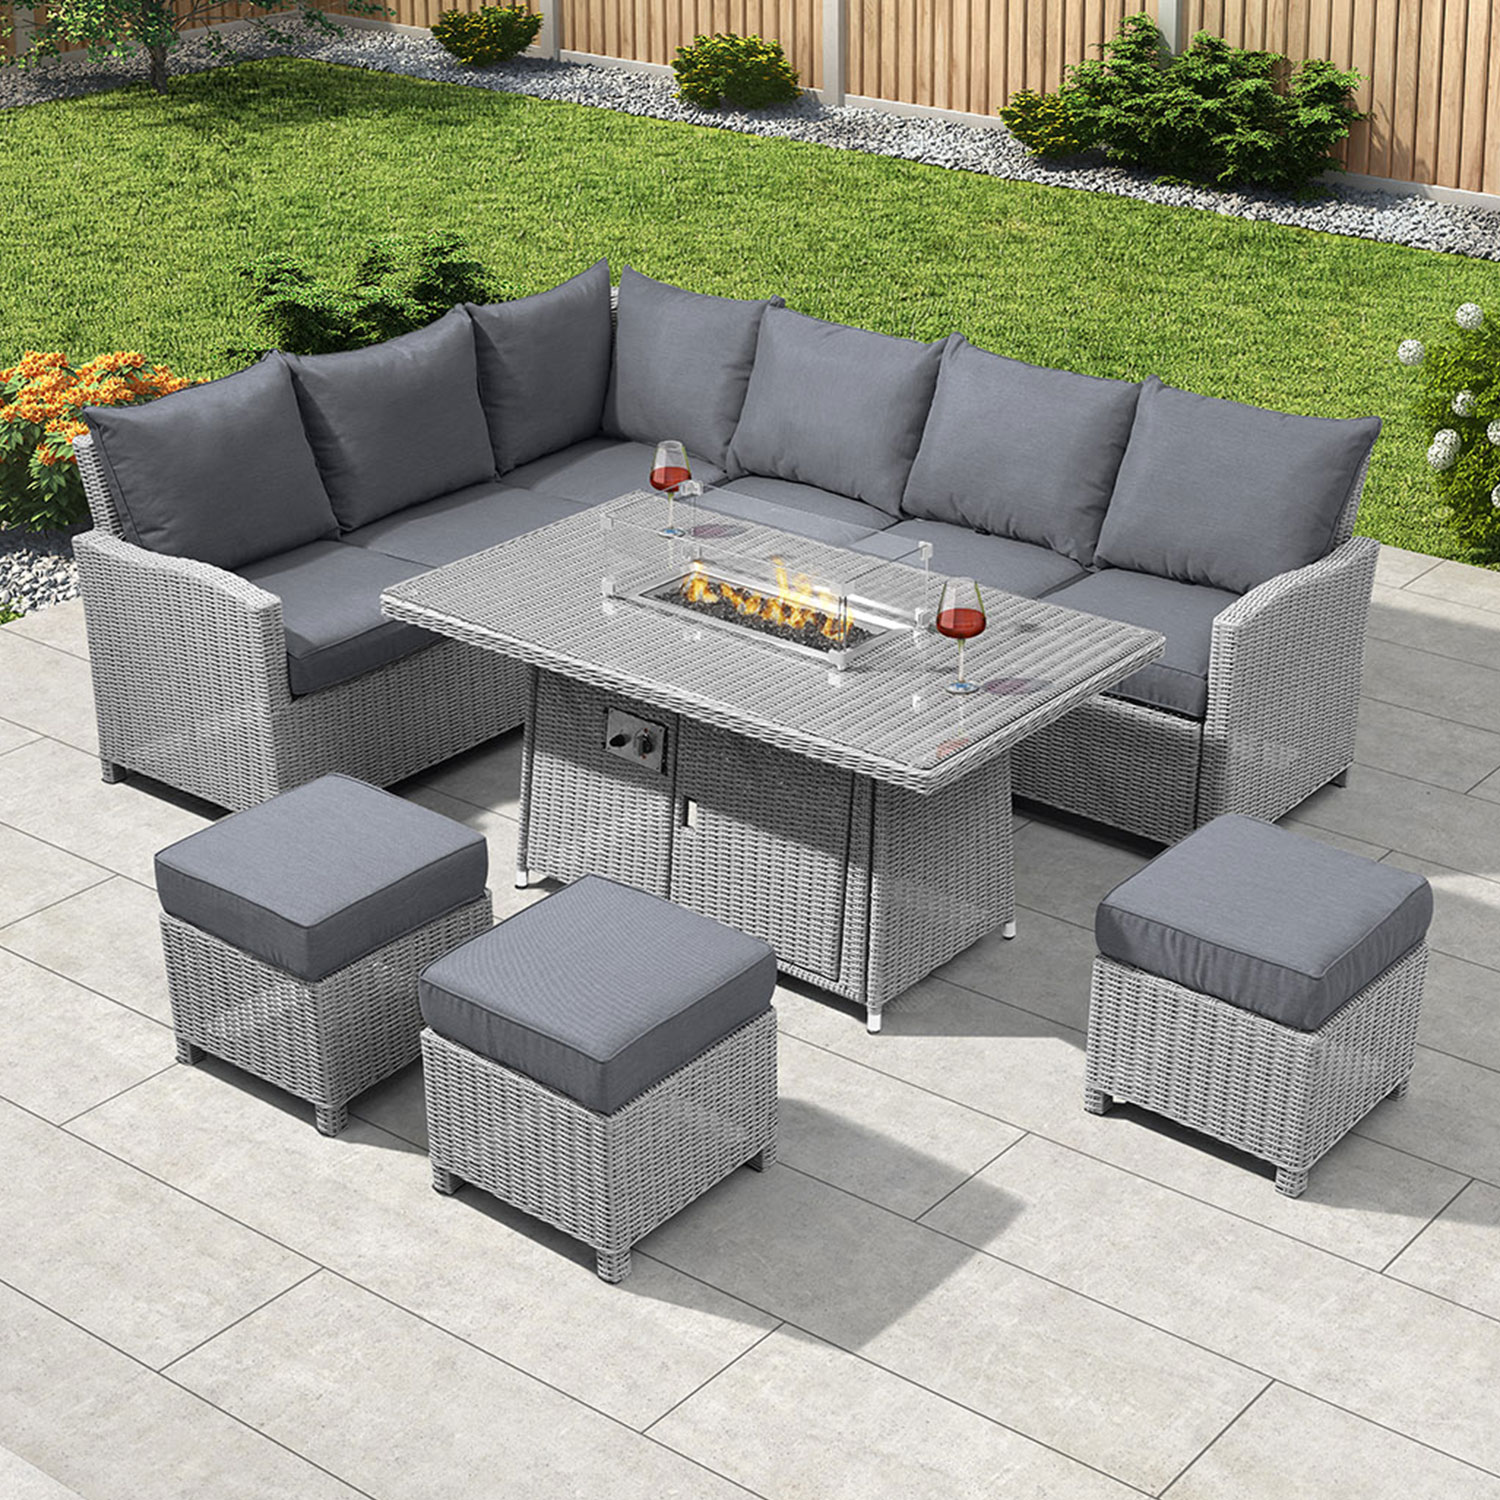 Image of: Nova Heritage Ciara Corner Dining Set With Fire Pit Table Left Hand White Wash Crownhill